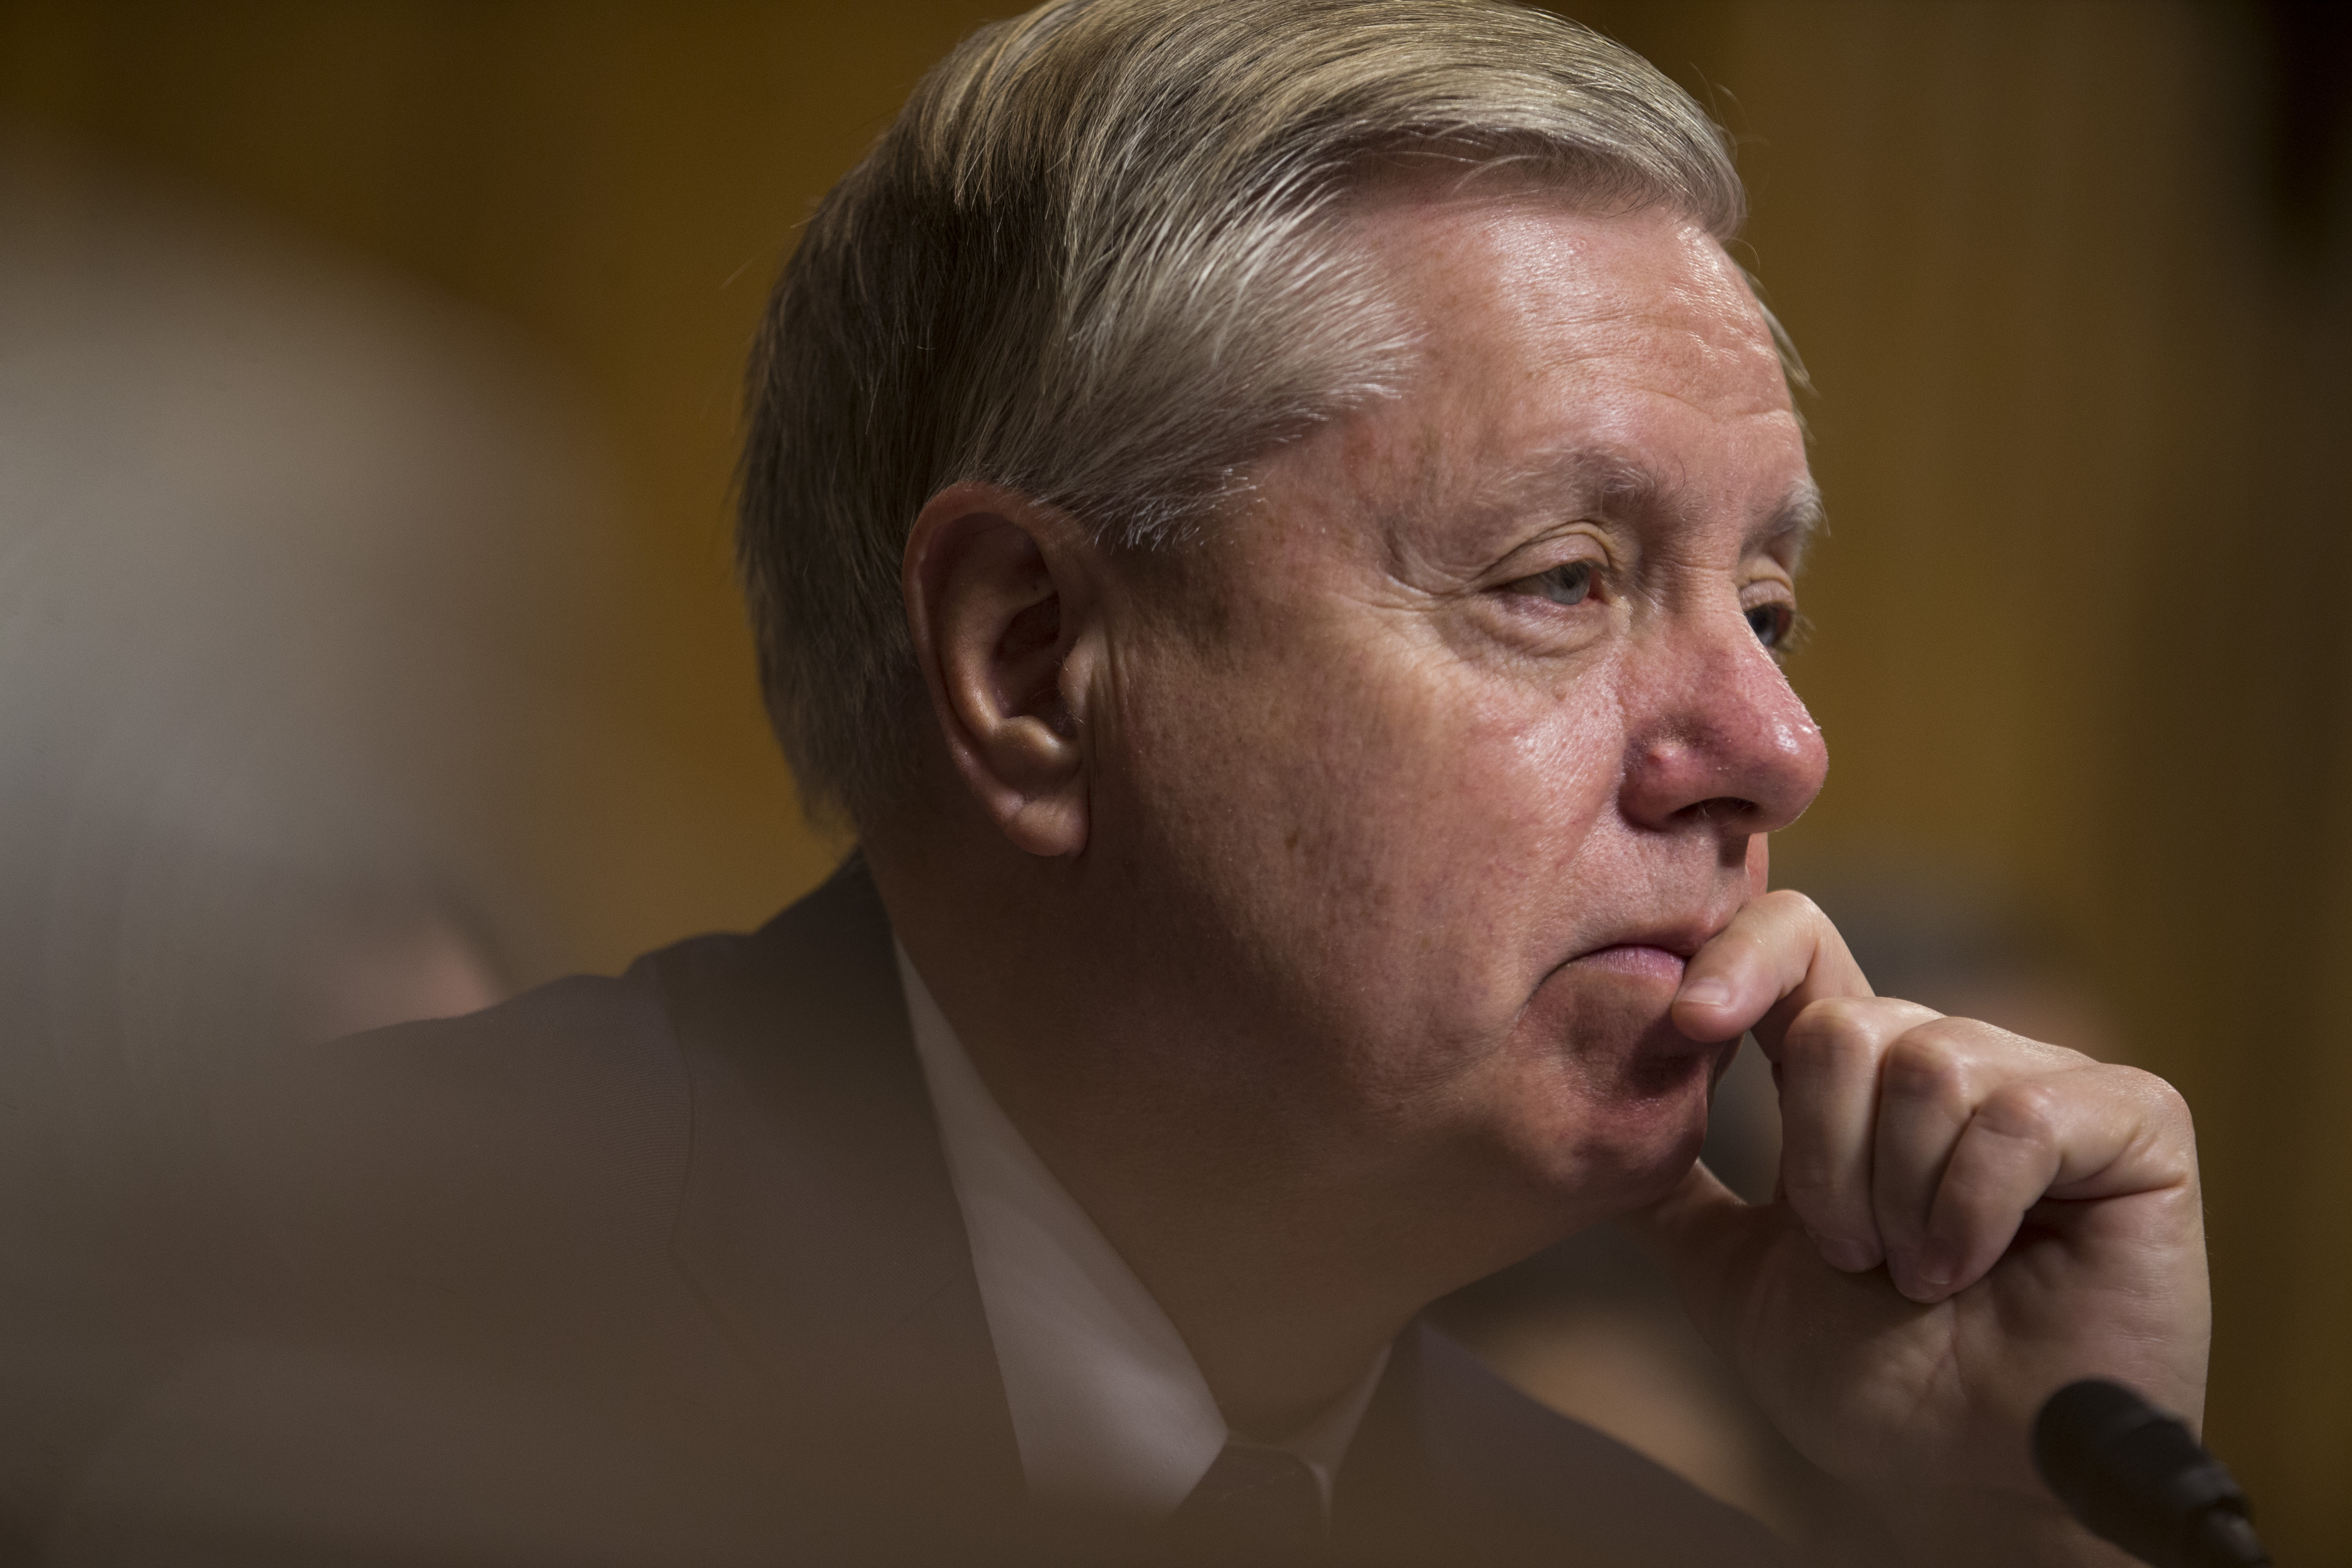 """Sen. Lindsey Graham, presiding over a February 5, 2019 Judiciary hearing, told Trump's defense chief that leaving Syria was """"the dumbest f***cking idea I've ever heard."""""""